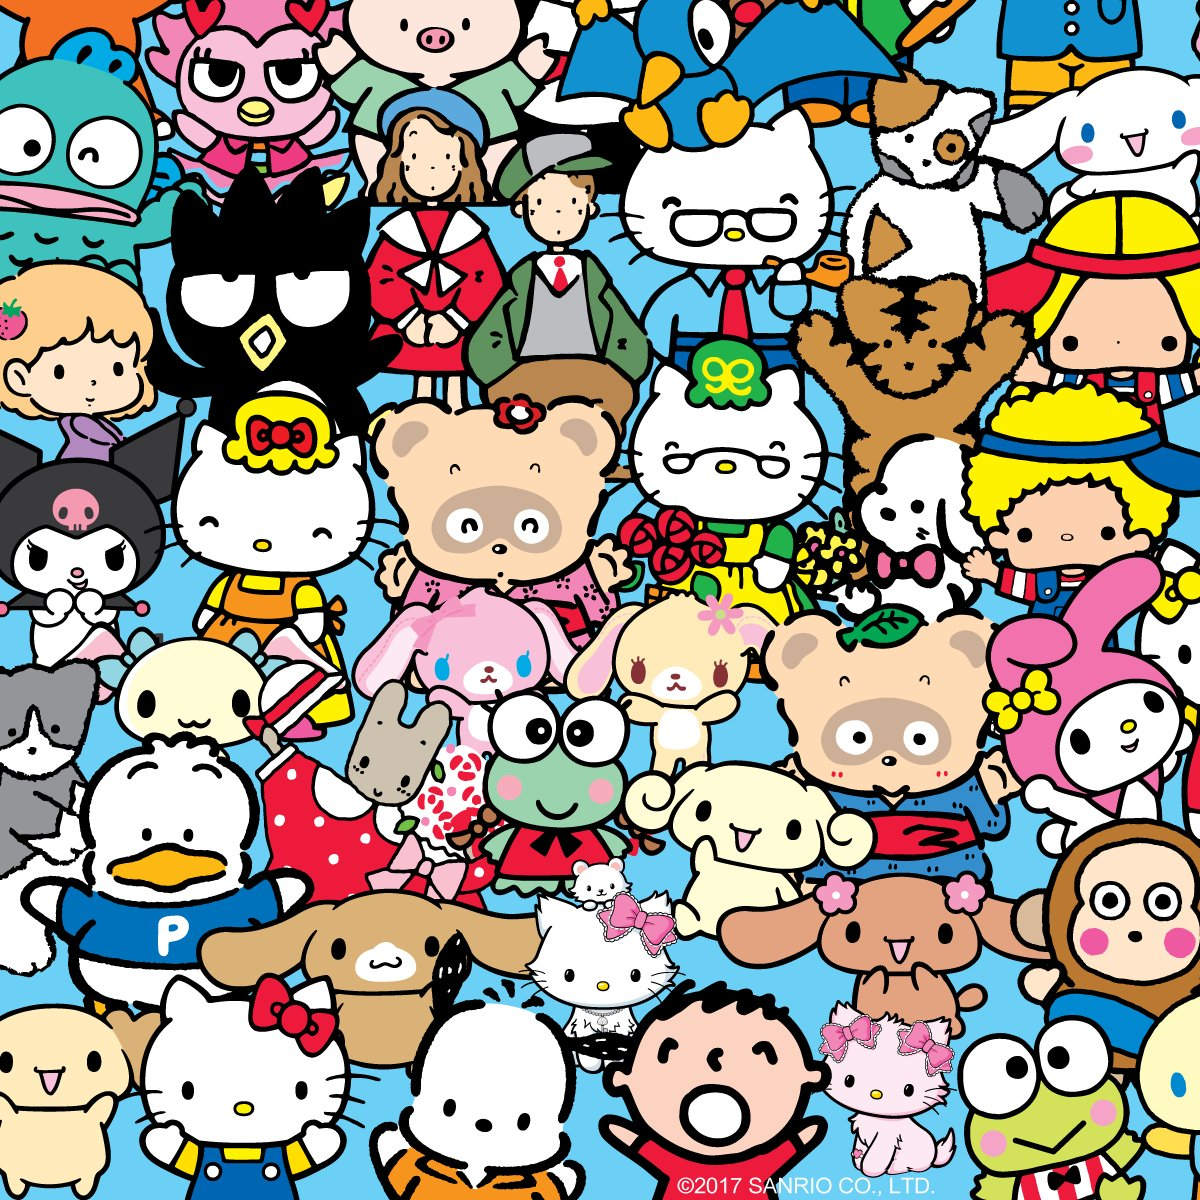 Cute Tokidoki Wallpaper Sanrio On Twitter Quot Twitter Now Has 280characters But